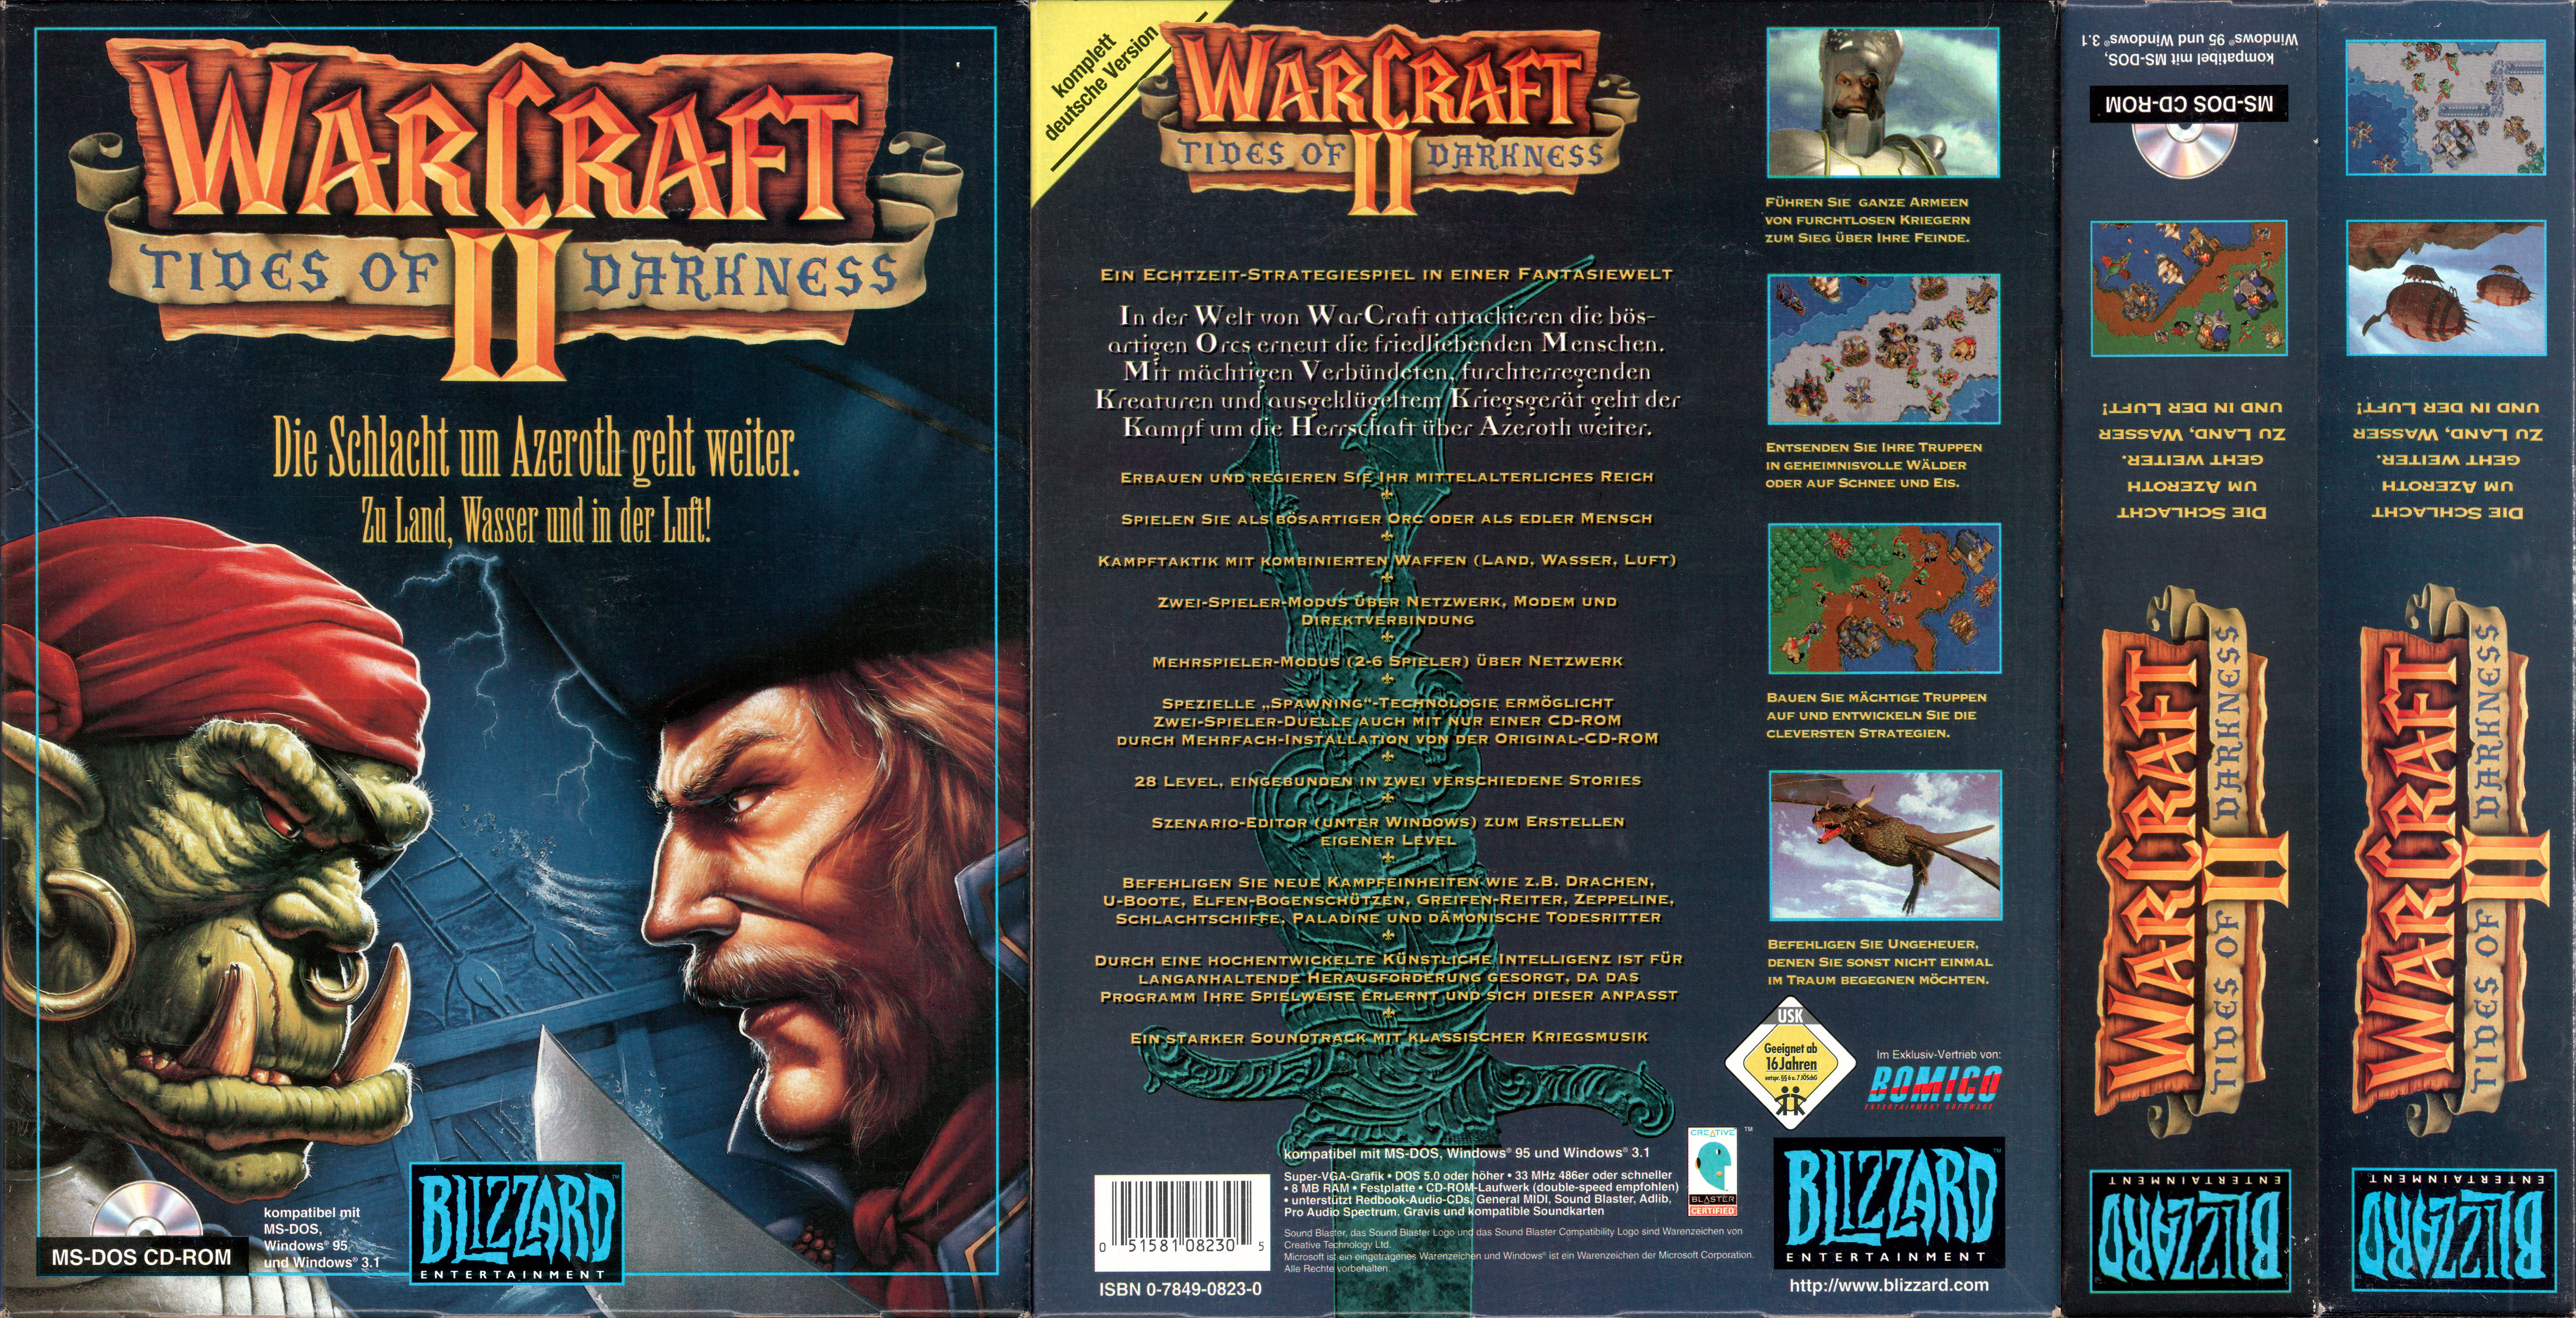 warcraft 2 box art